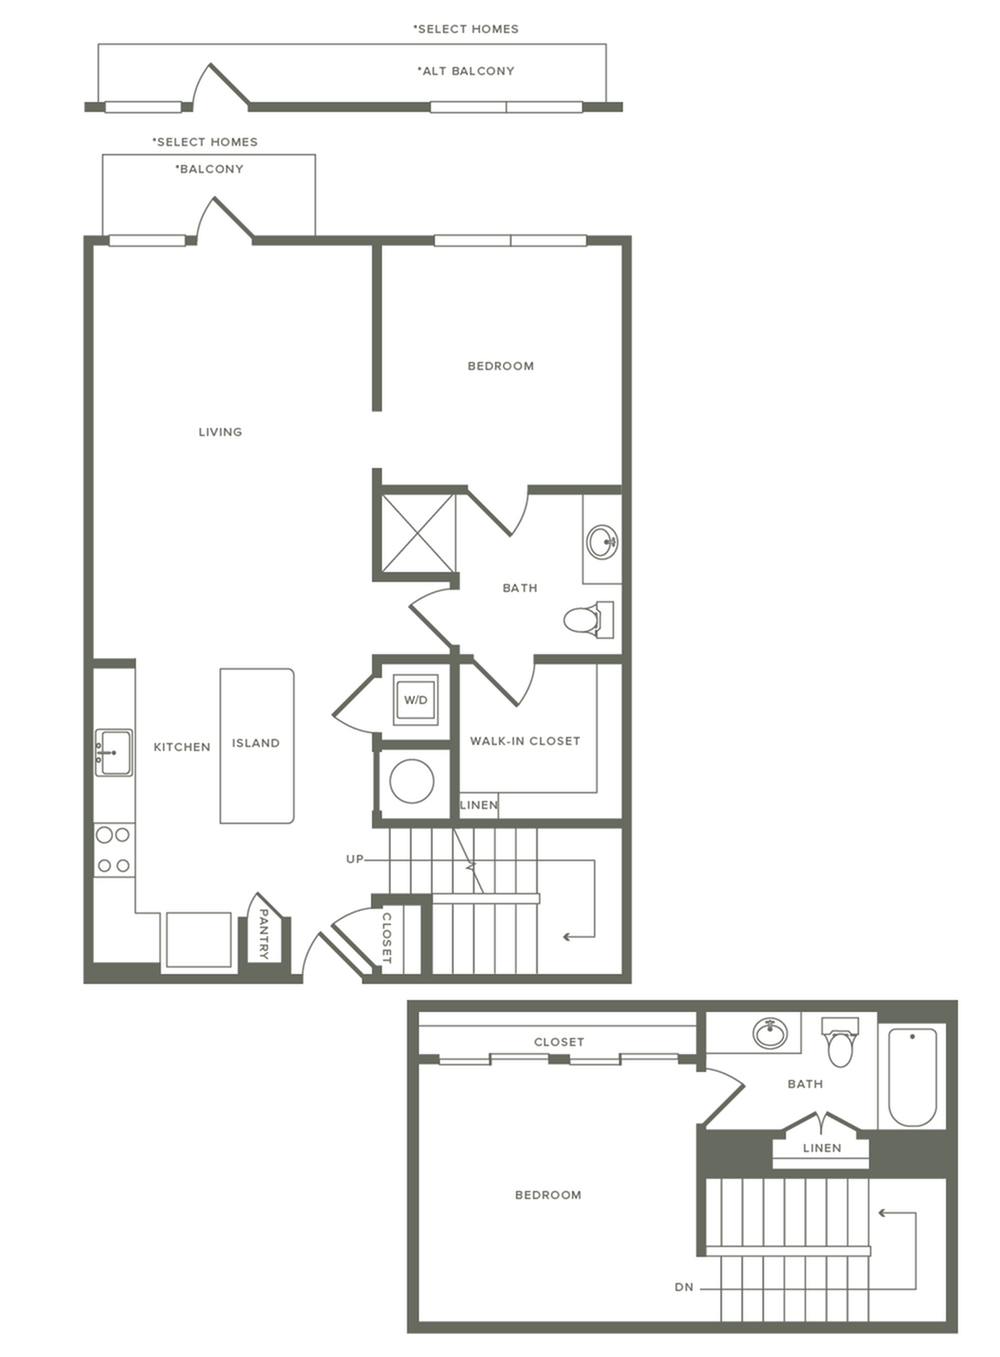 1114 square foot two bedroom two bath two story apartment floorplan image